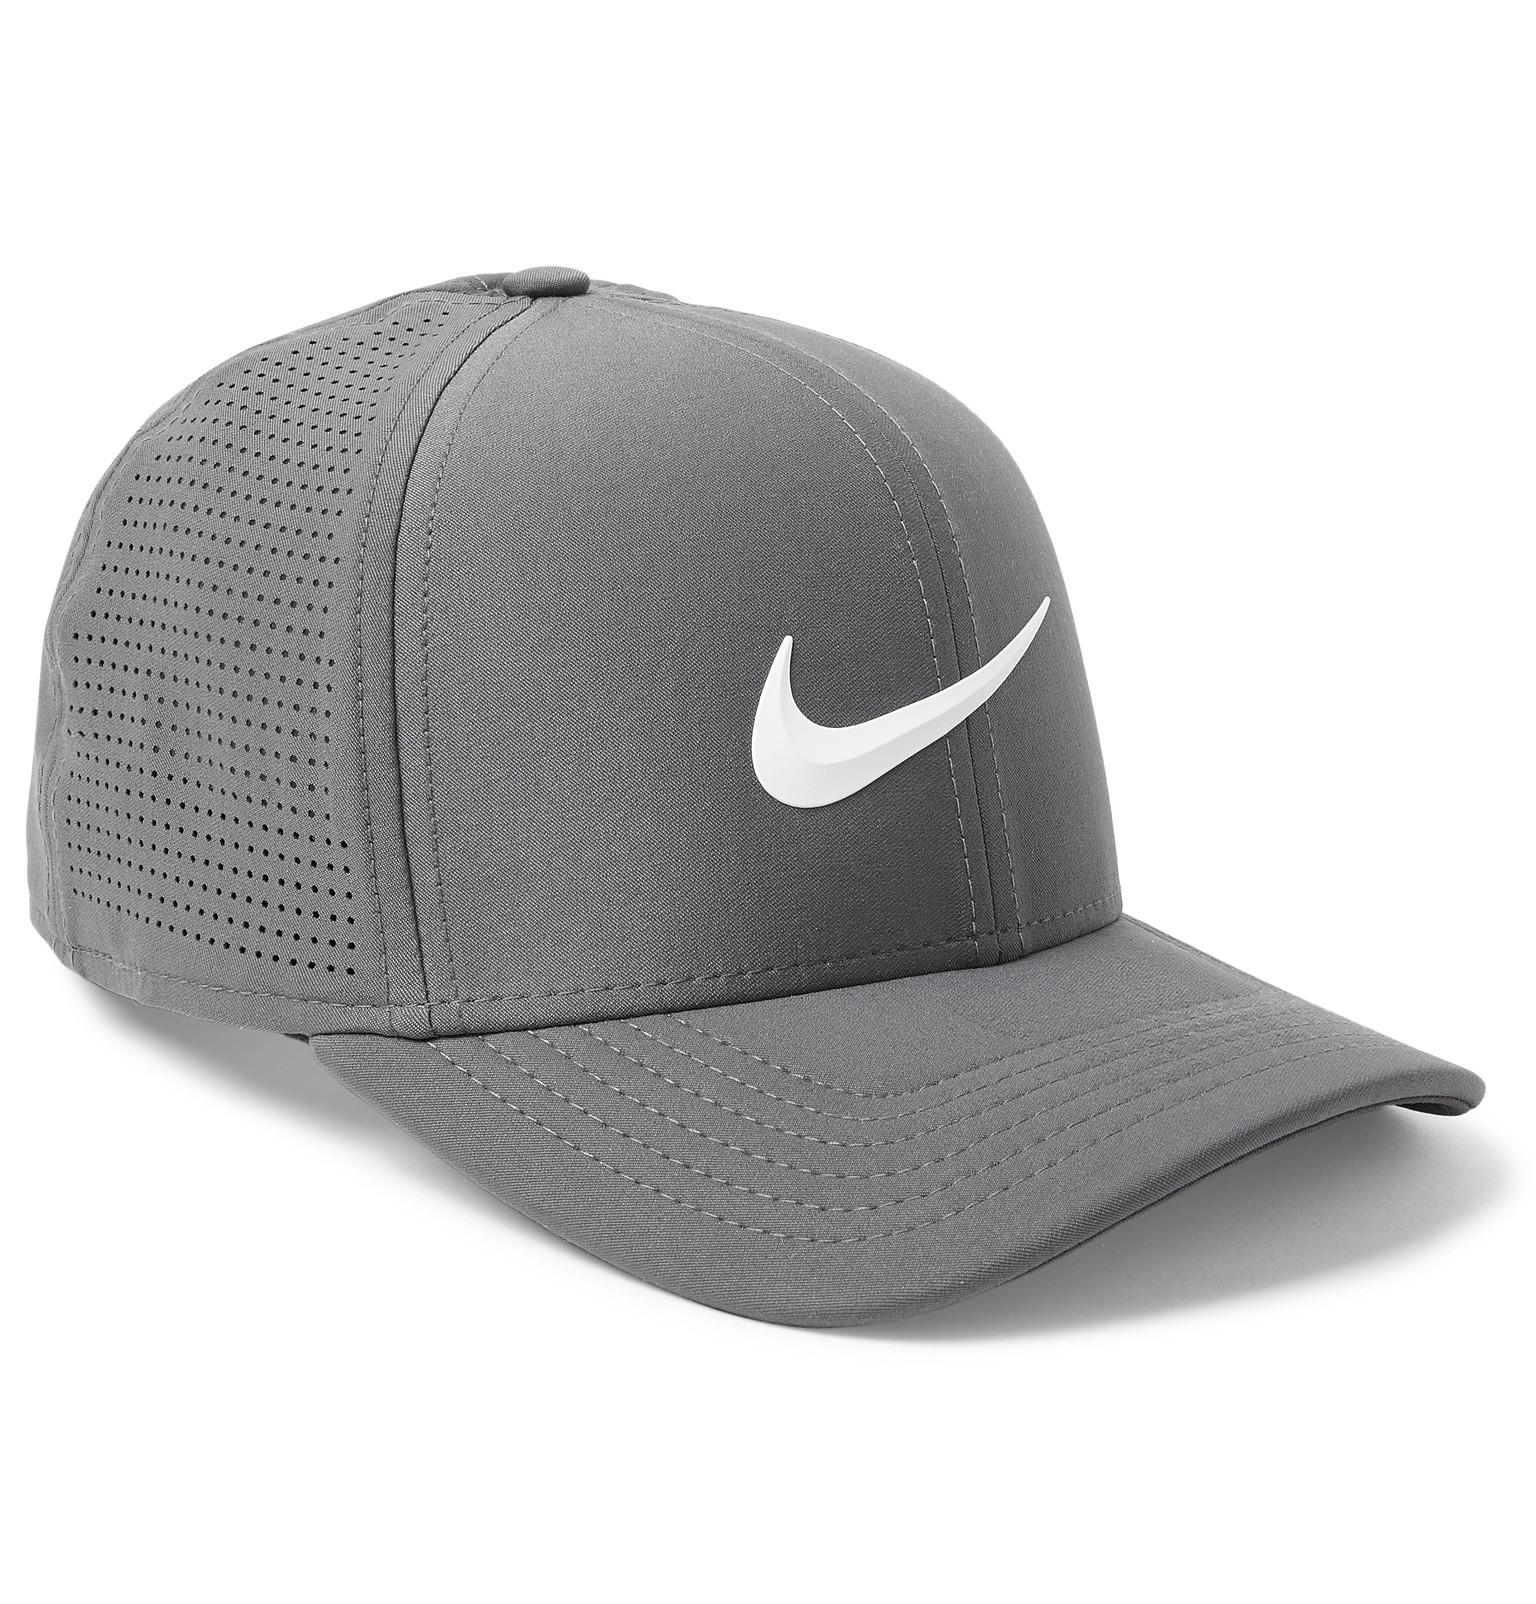 787be77b ... Lyst - Nike Aerobill Classic 99 Dri-fit Golf Cap in Gray for Men  8d9df62029a4 ...